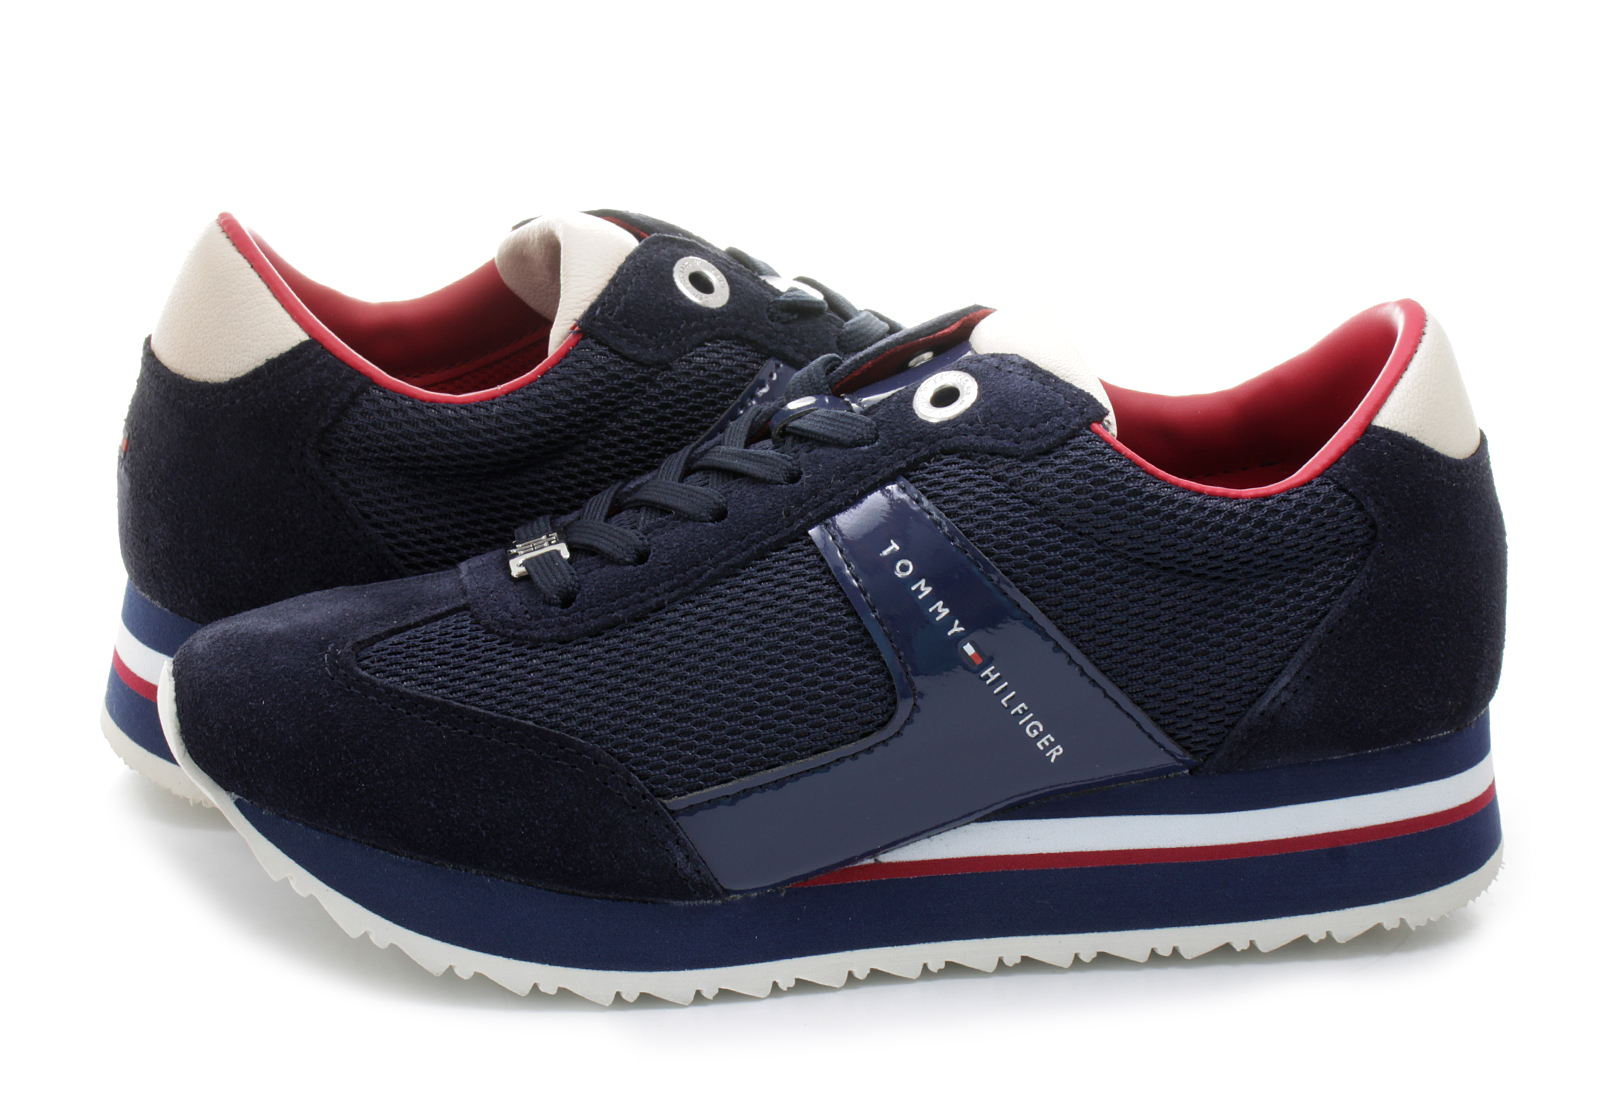 tommy hilfiger shoes angel 1c1 17s 0627 406 online shop for sneakers shoes and boots. Black Bedroom Furniture Sets. Home Design Ideas